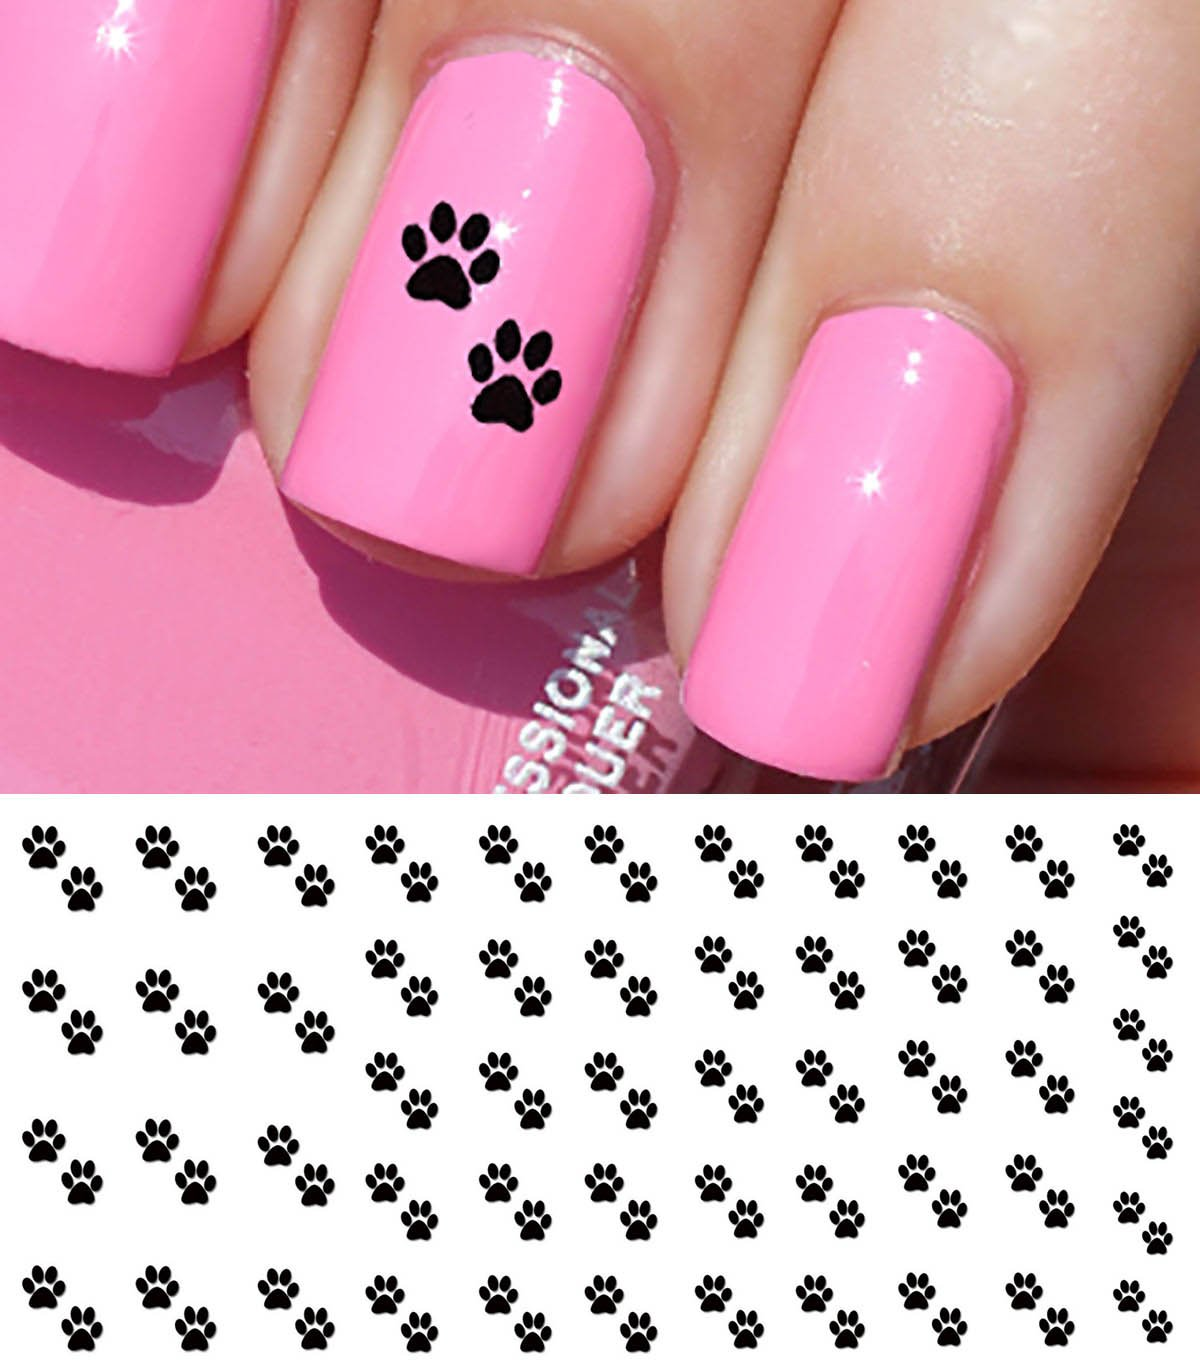 Amazon.com: Paw Prints Water Slide Nail Art Decals- Salon Quality 5.5